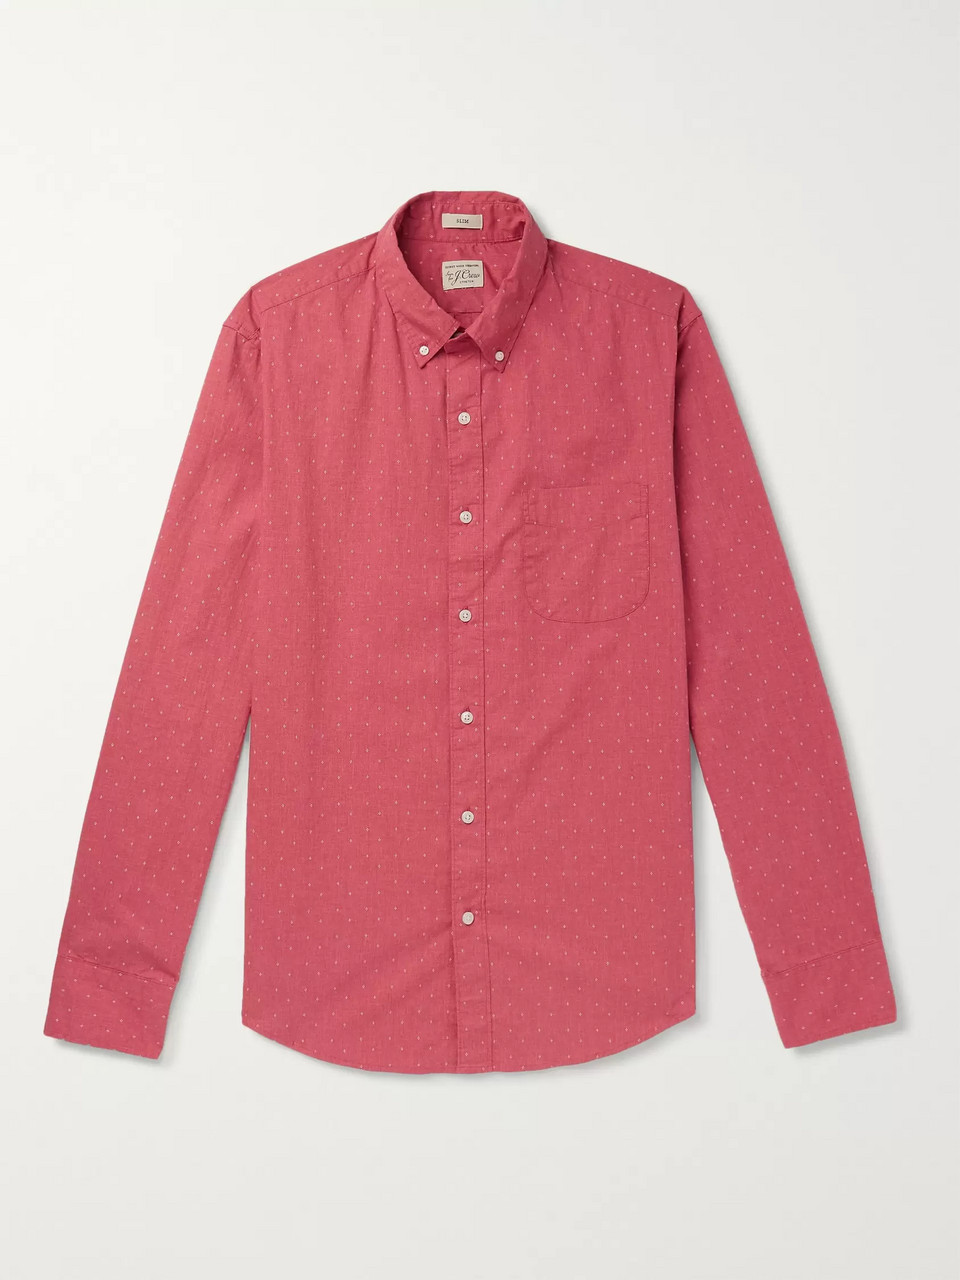 J.Crew Slim-Fit Button-Down Printed Cotton Shirt